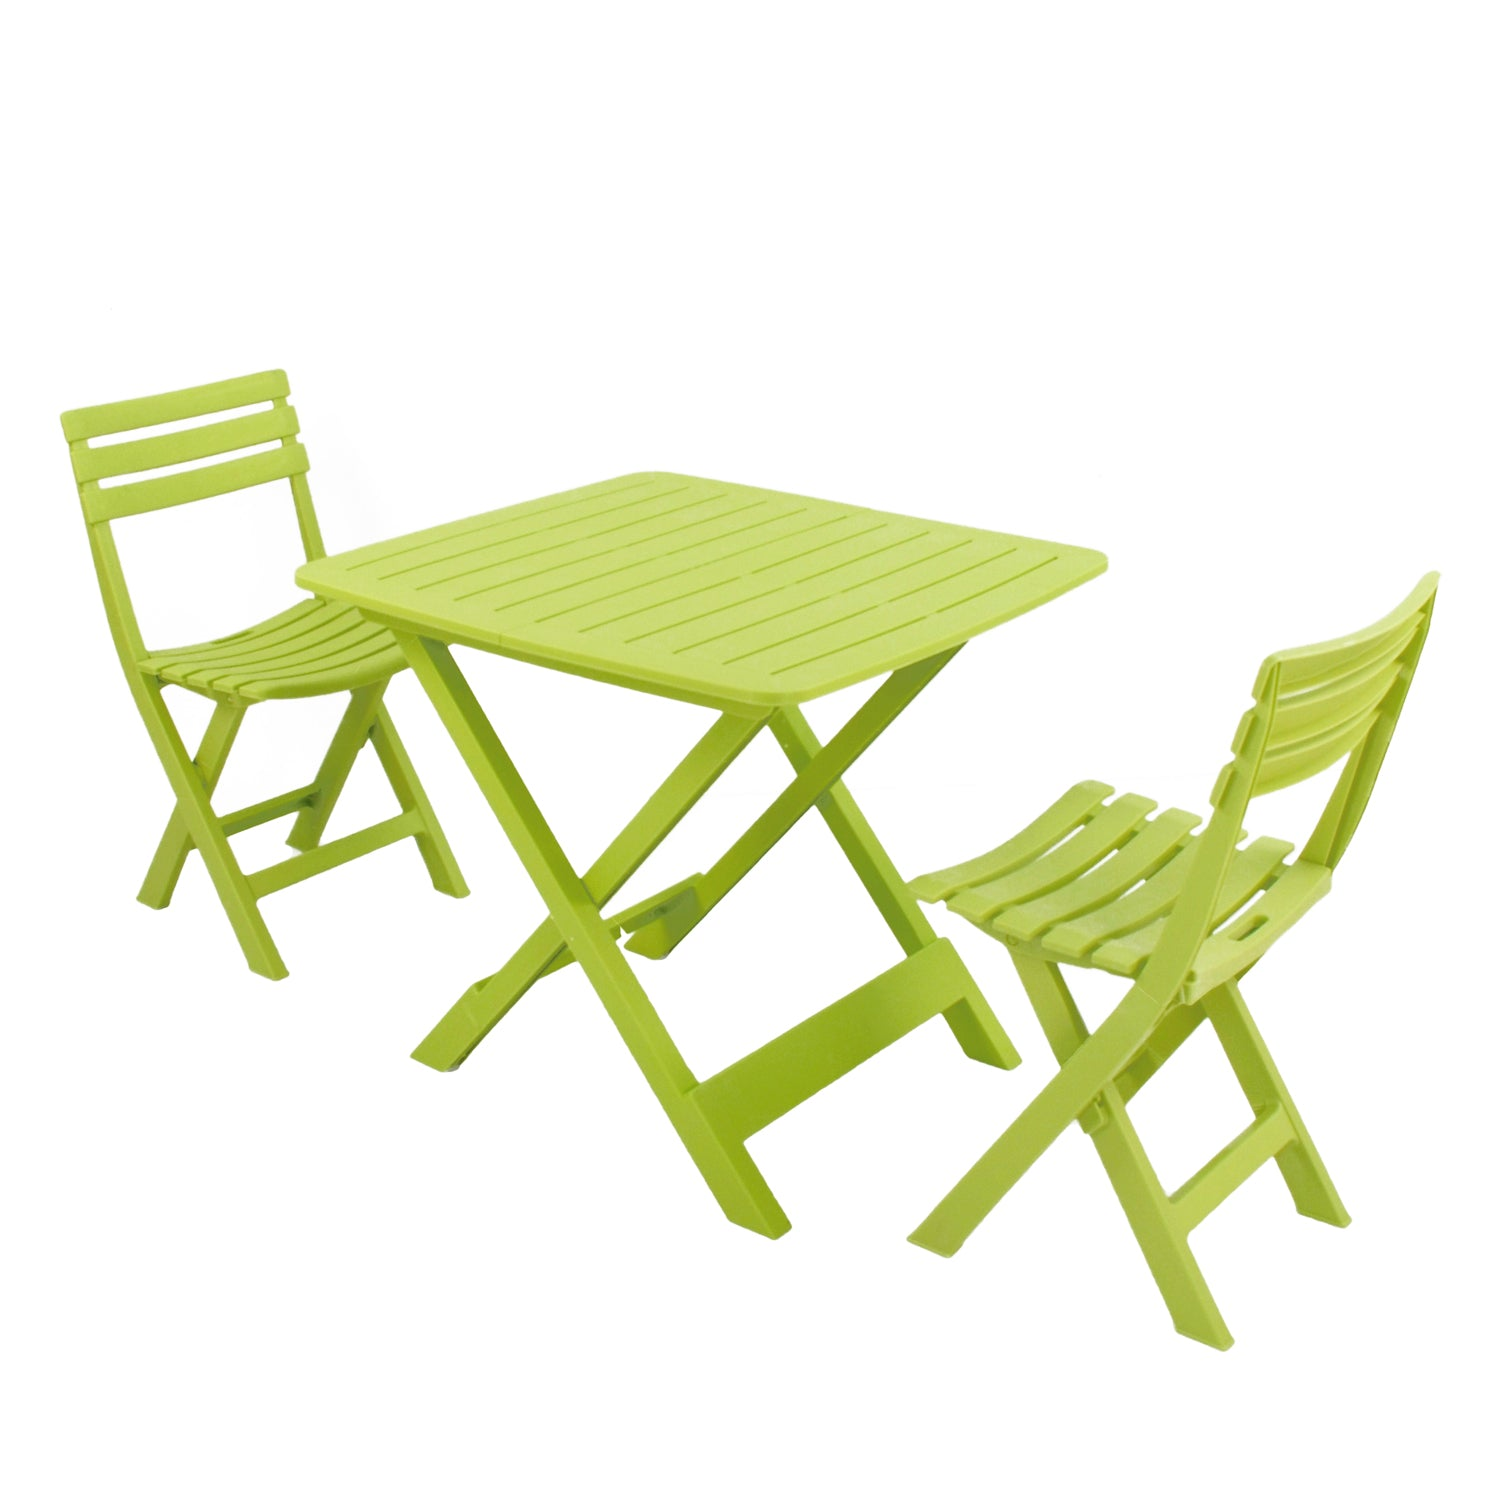 Trabella Brescia Folding Table With 2 Brescia Chairs Set Lime - Ruby's Garden Boutique